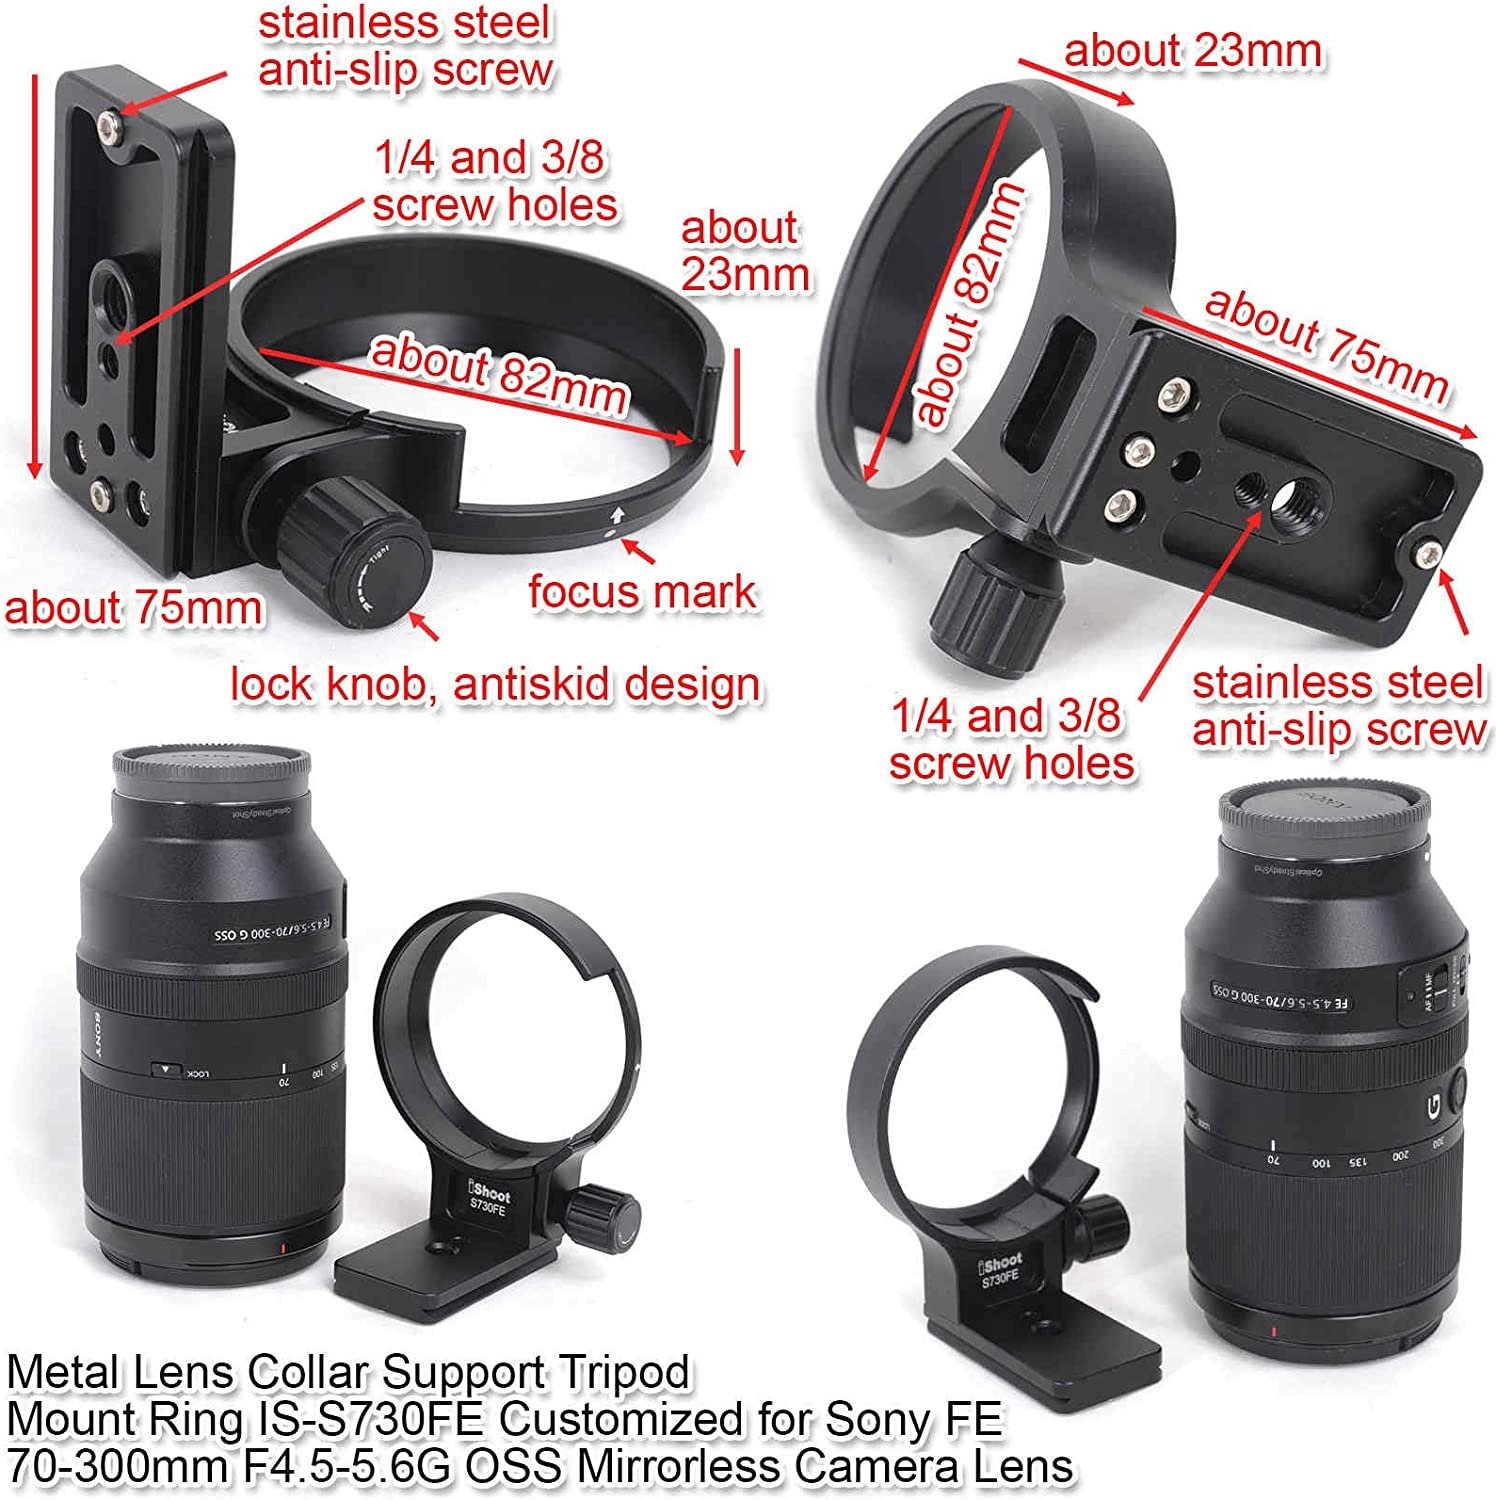 CNC Machined Lens Collar Support Tripod Mount Ring for Sony FE 70-300mm F4.5-5.6G OSS Mirrorless Camera,Bottom is ARCA Fit Quick Release Plate Compatible with Tripod Ball Head of ARCA-Swiss Kirk Fit